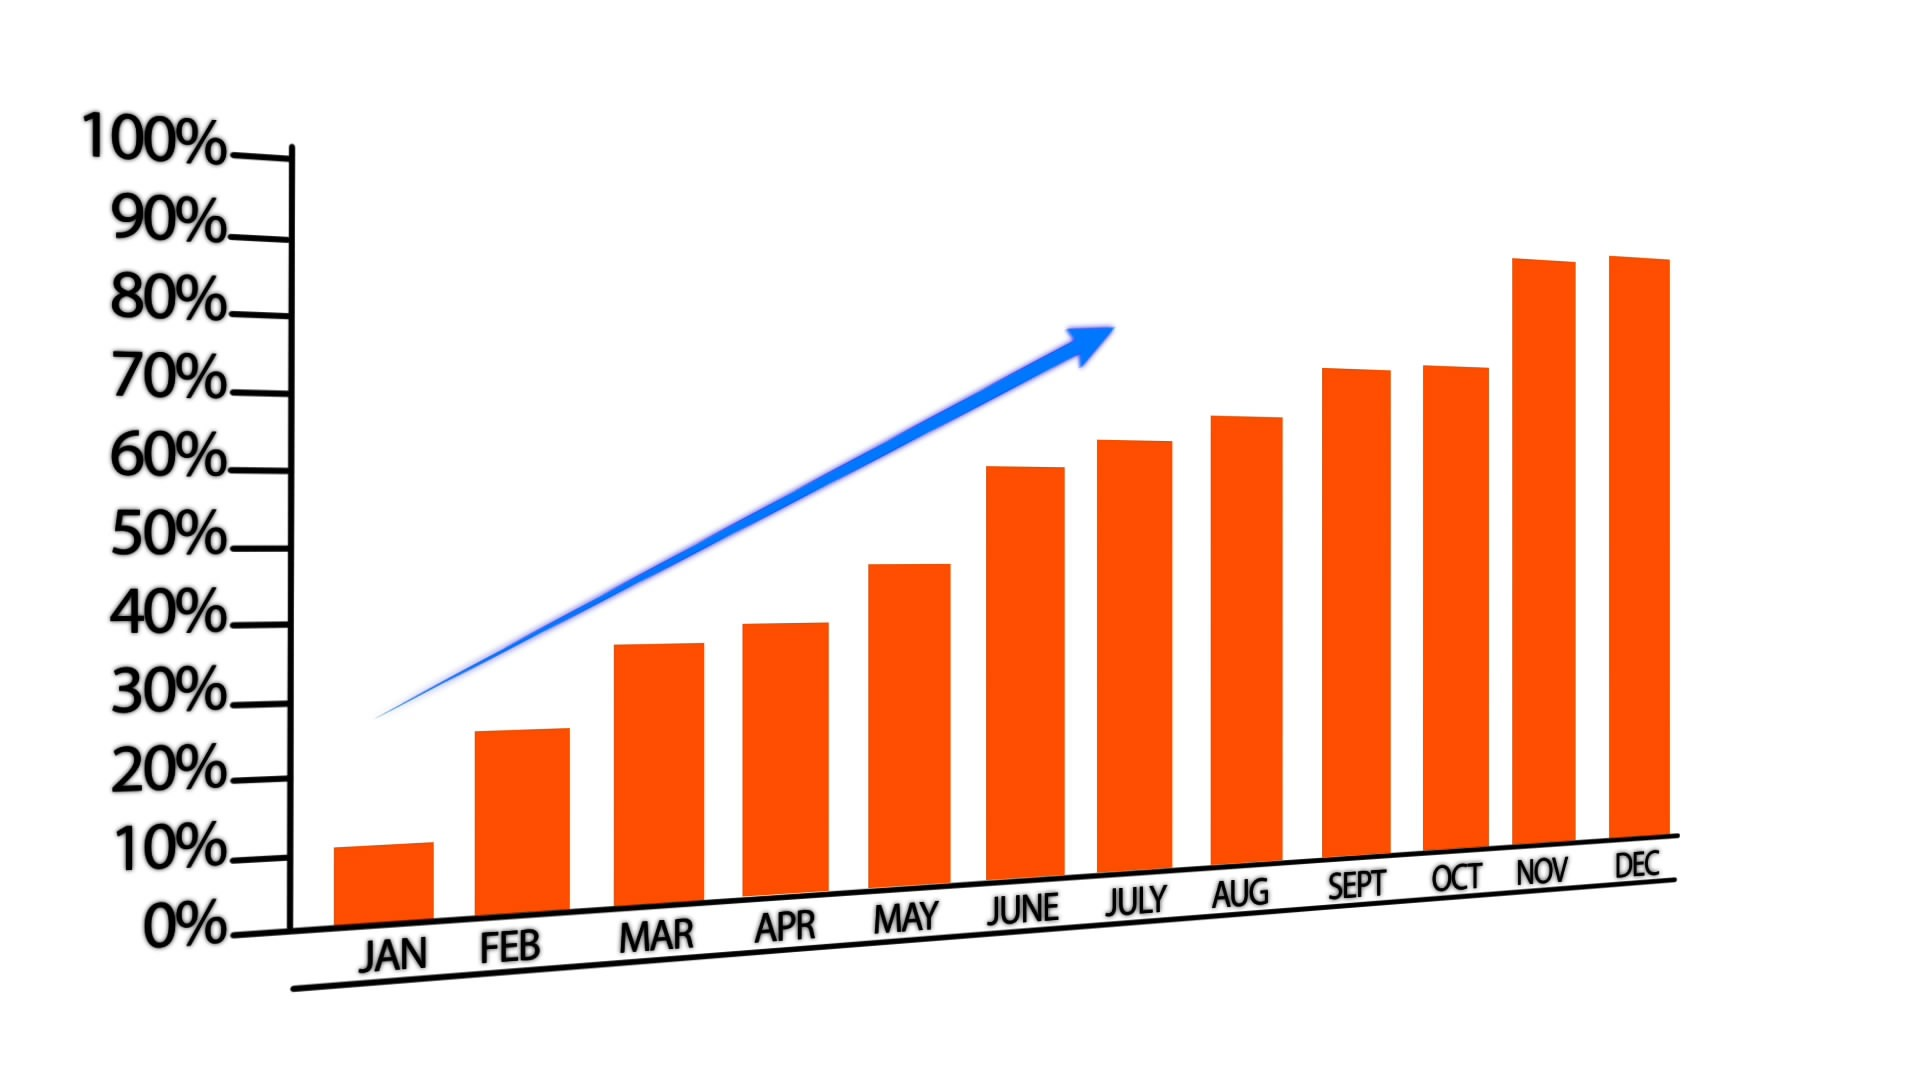 Generic bar graph showing incremental growth over a year.